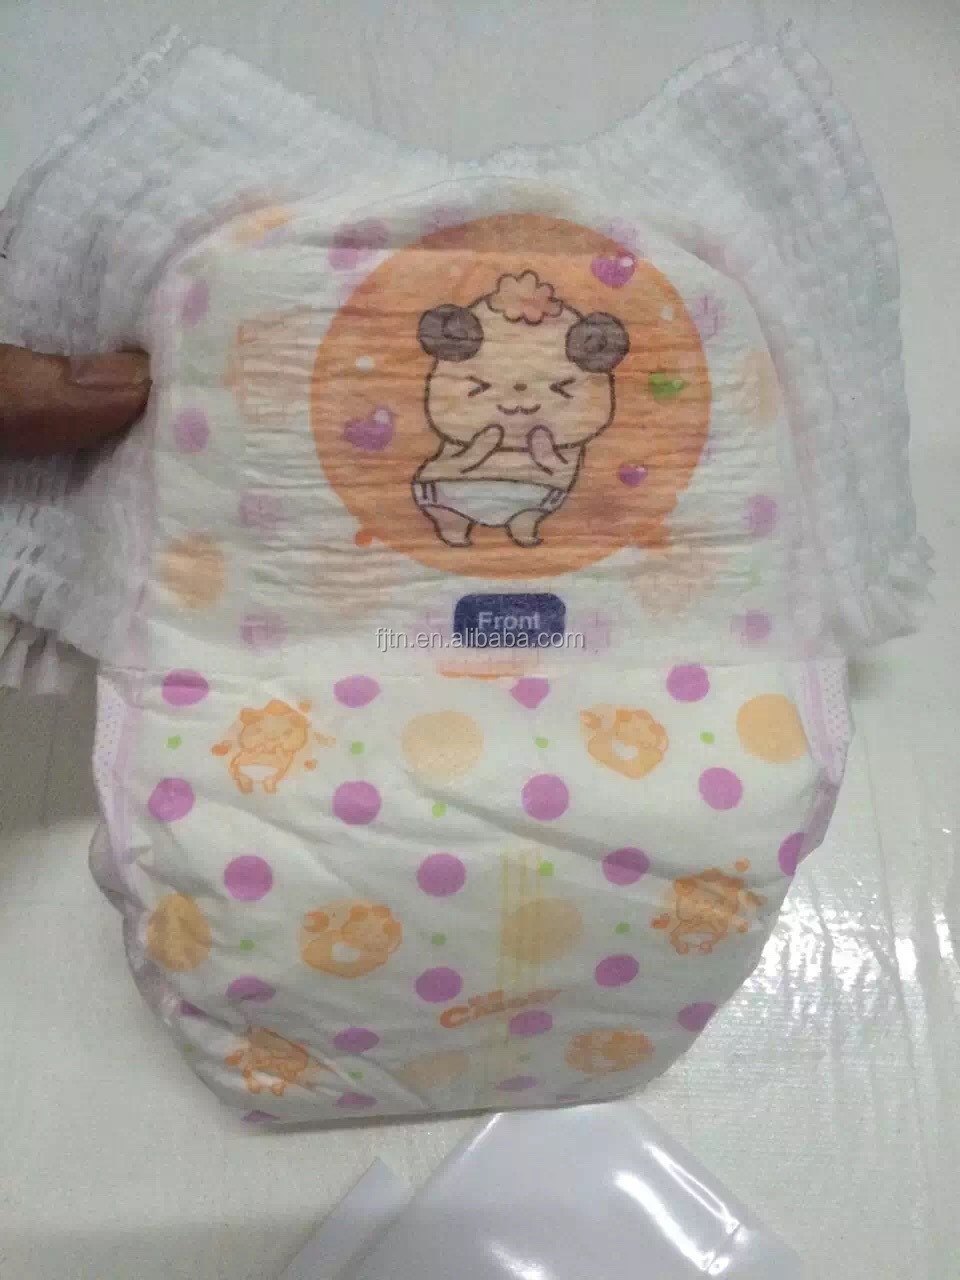 Easy wear diaper for babies disposable adult baby pants diaper made in China